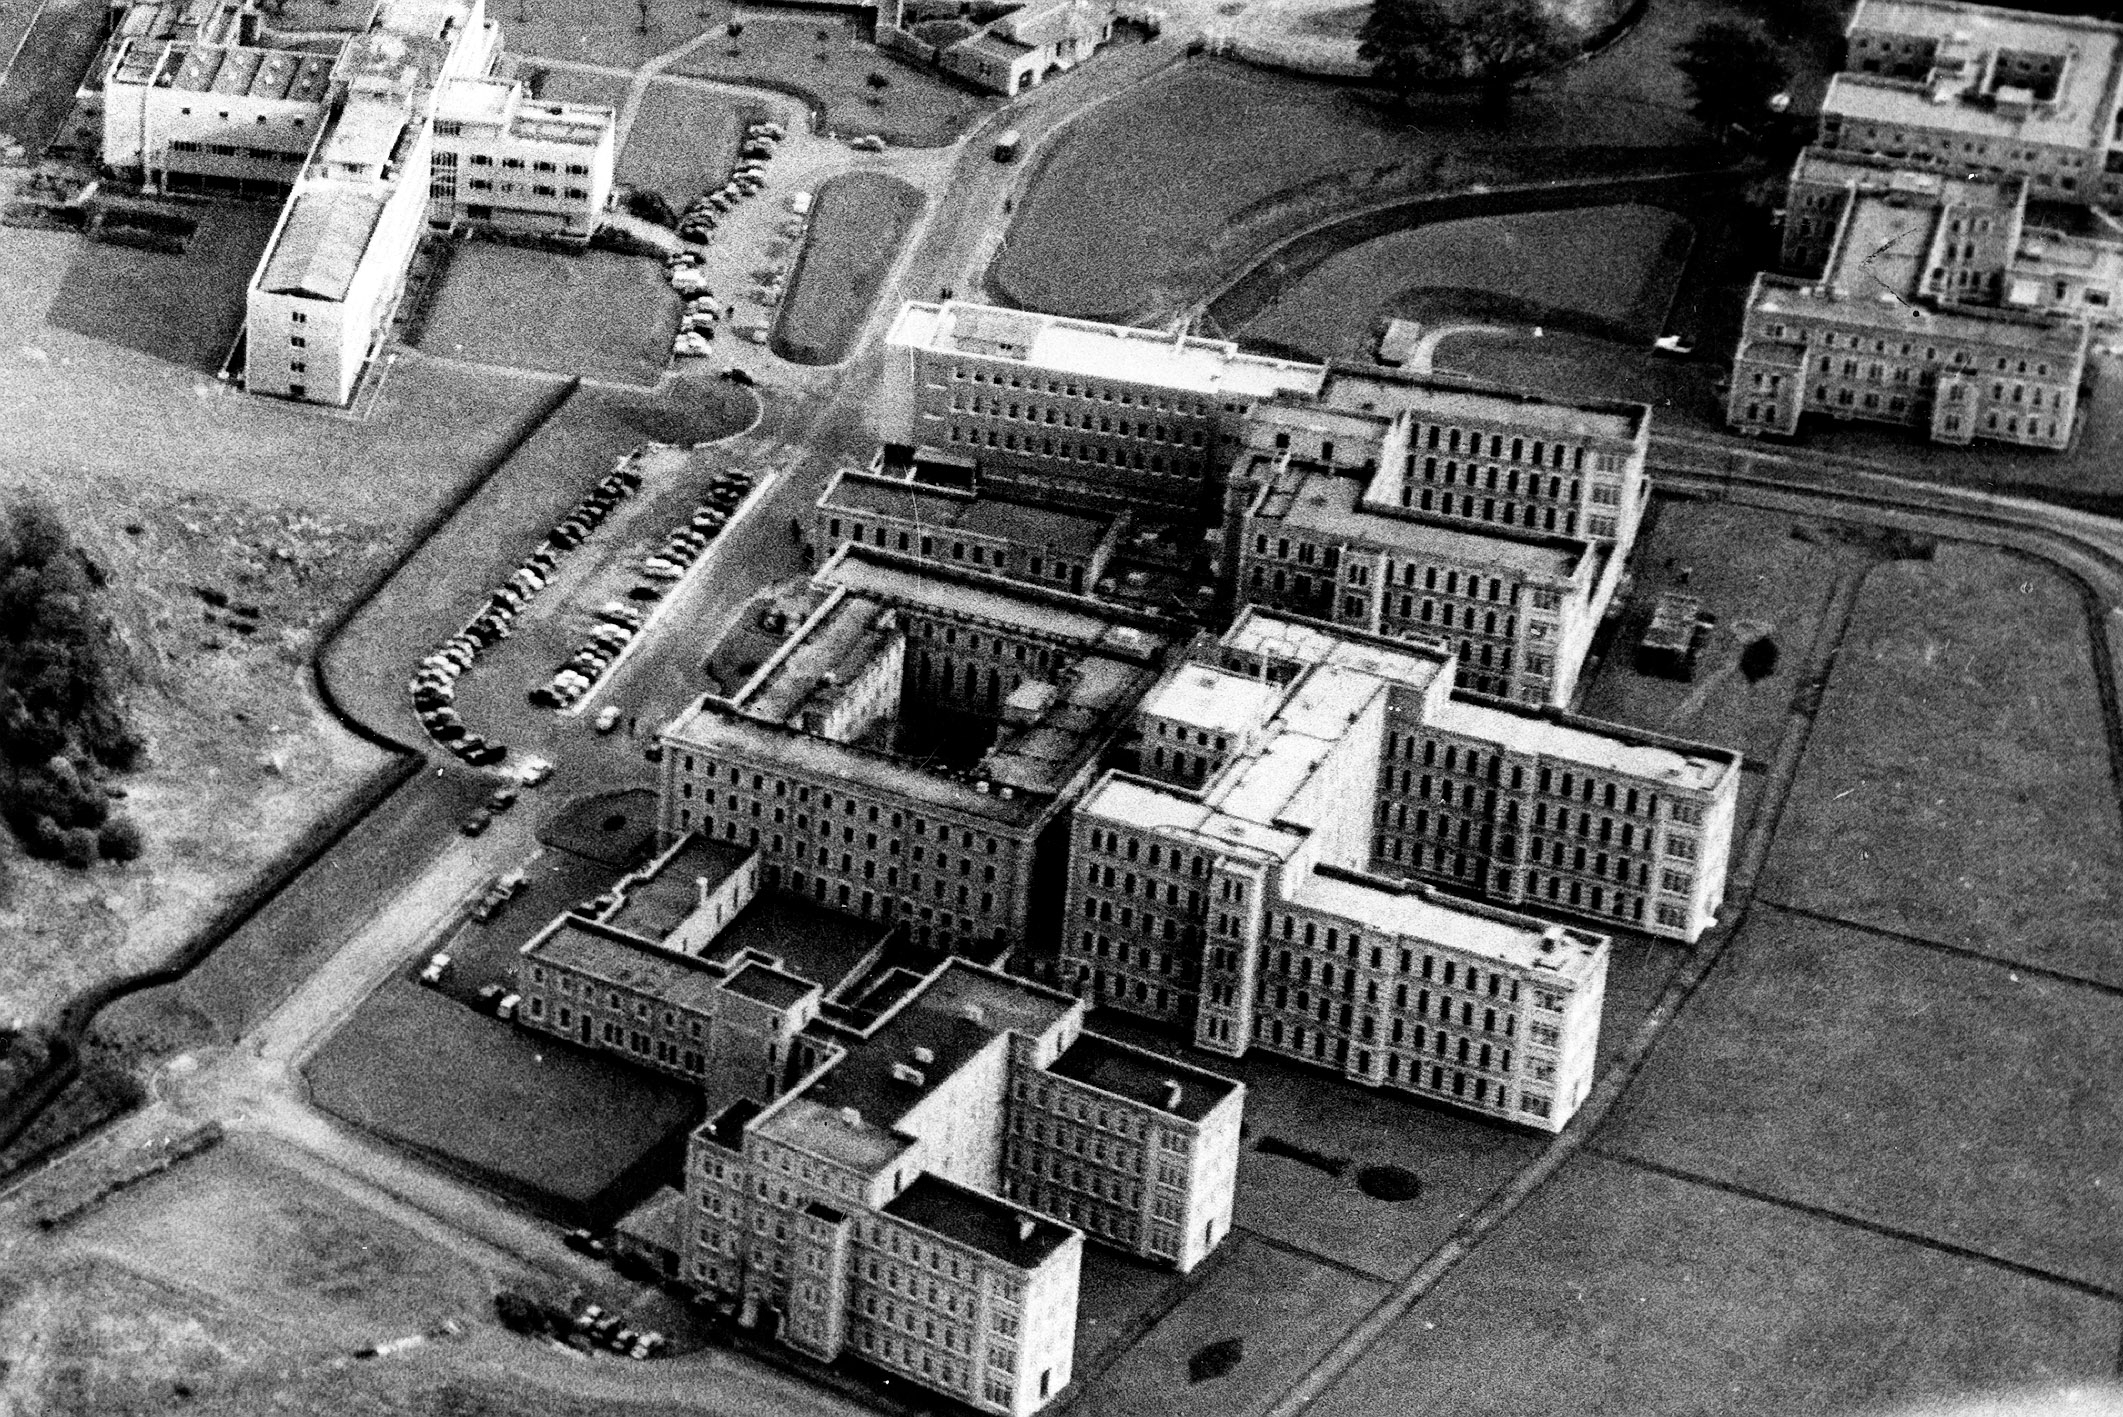 This shows the Aberdeen Royal Infirmary site before undergoing its expansion in 1967.